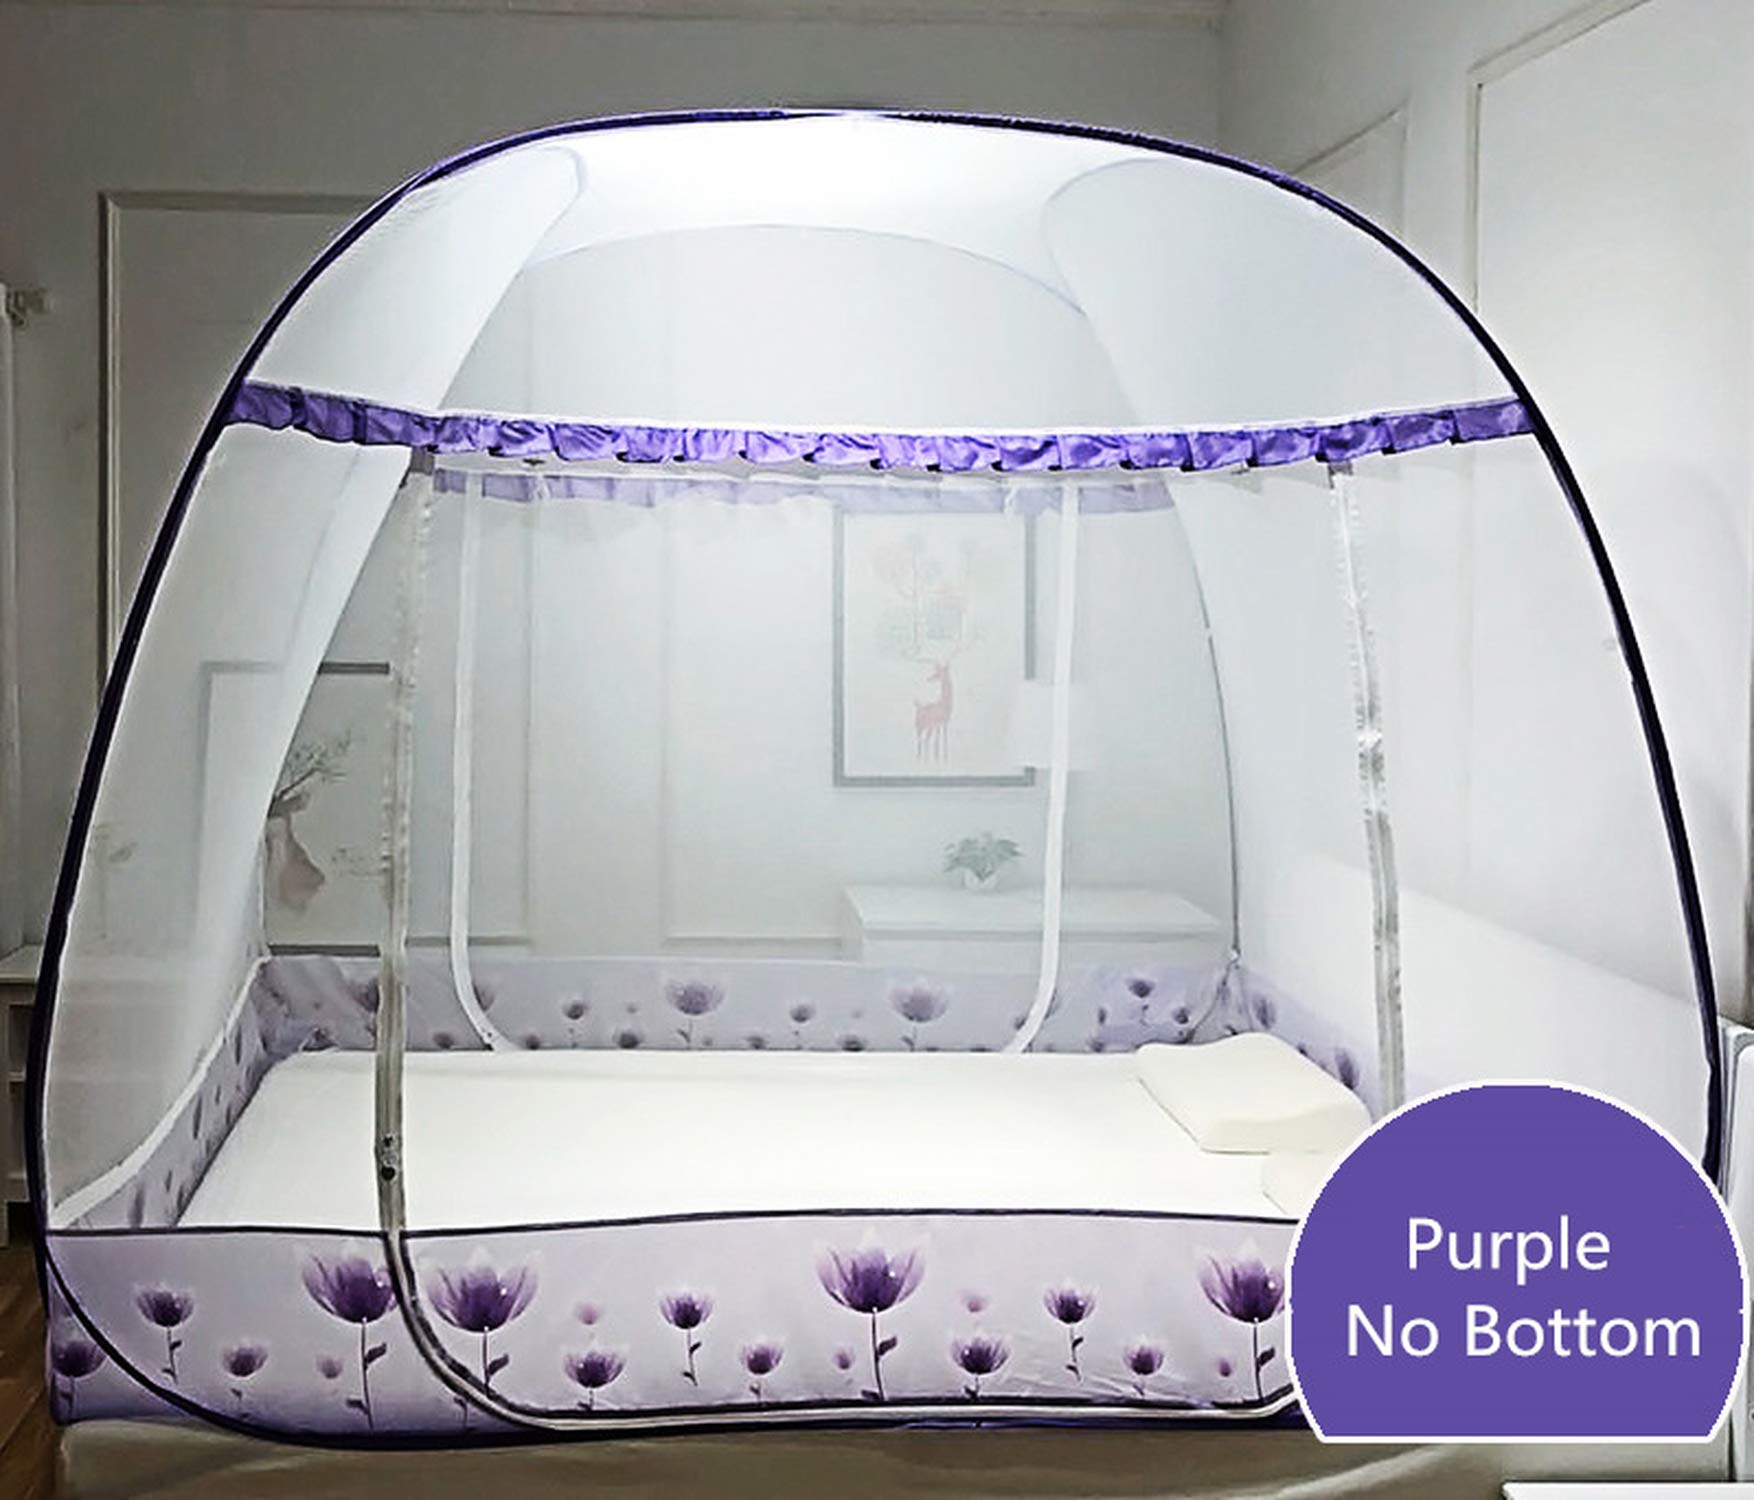 Large Square Mosquito Net for 1.8m Double Bed Insect Reject Bedding Net Three Door with Zipper Folding Portable Bed Net 13 Color,TK bainiaolanquandi,1.8m (6 feet) Bed by SuWuan mosquito net (Image #6)